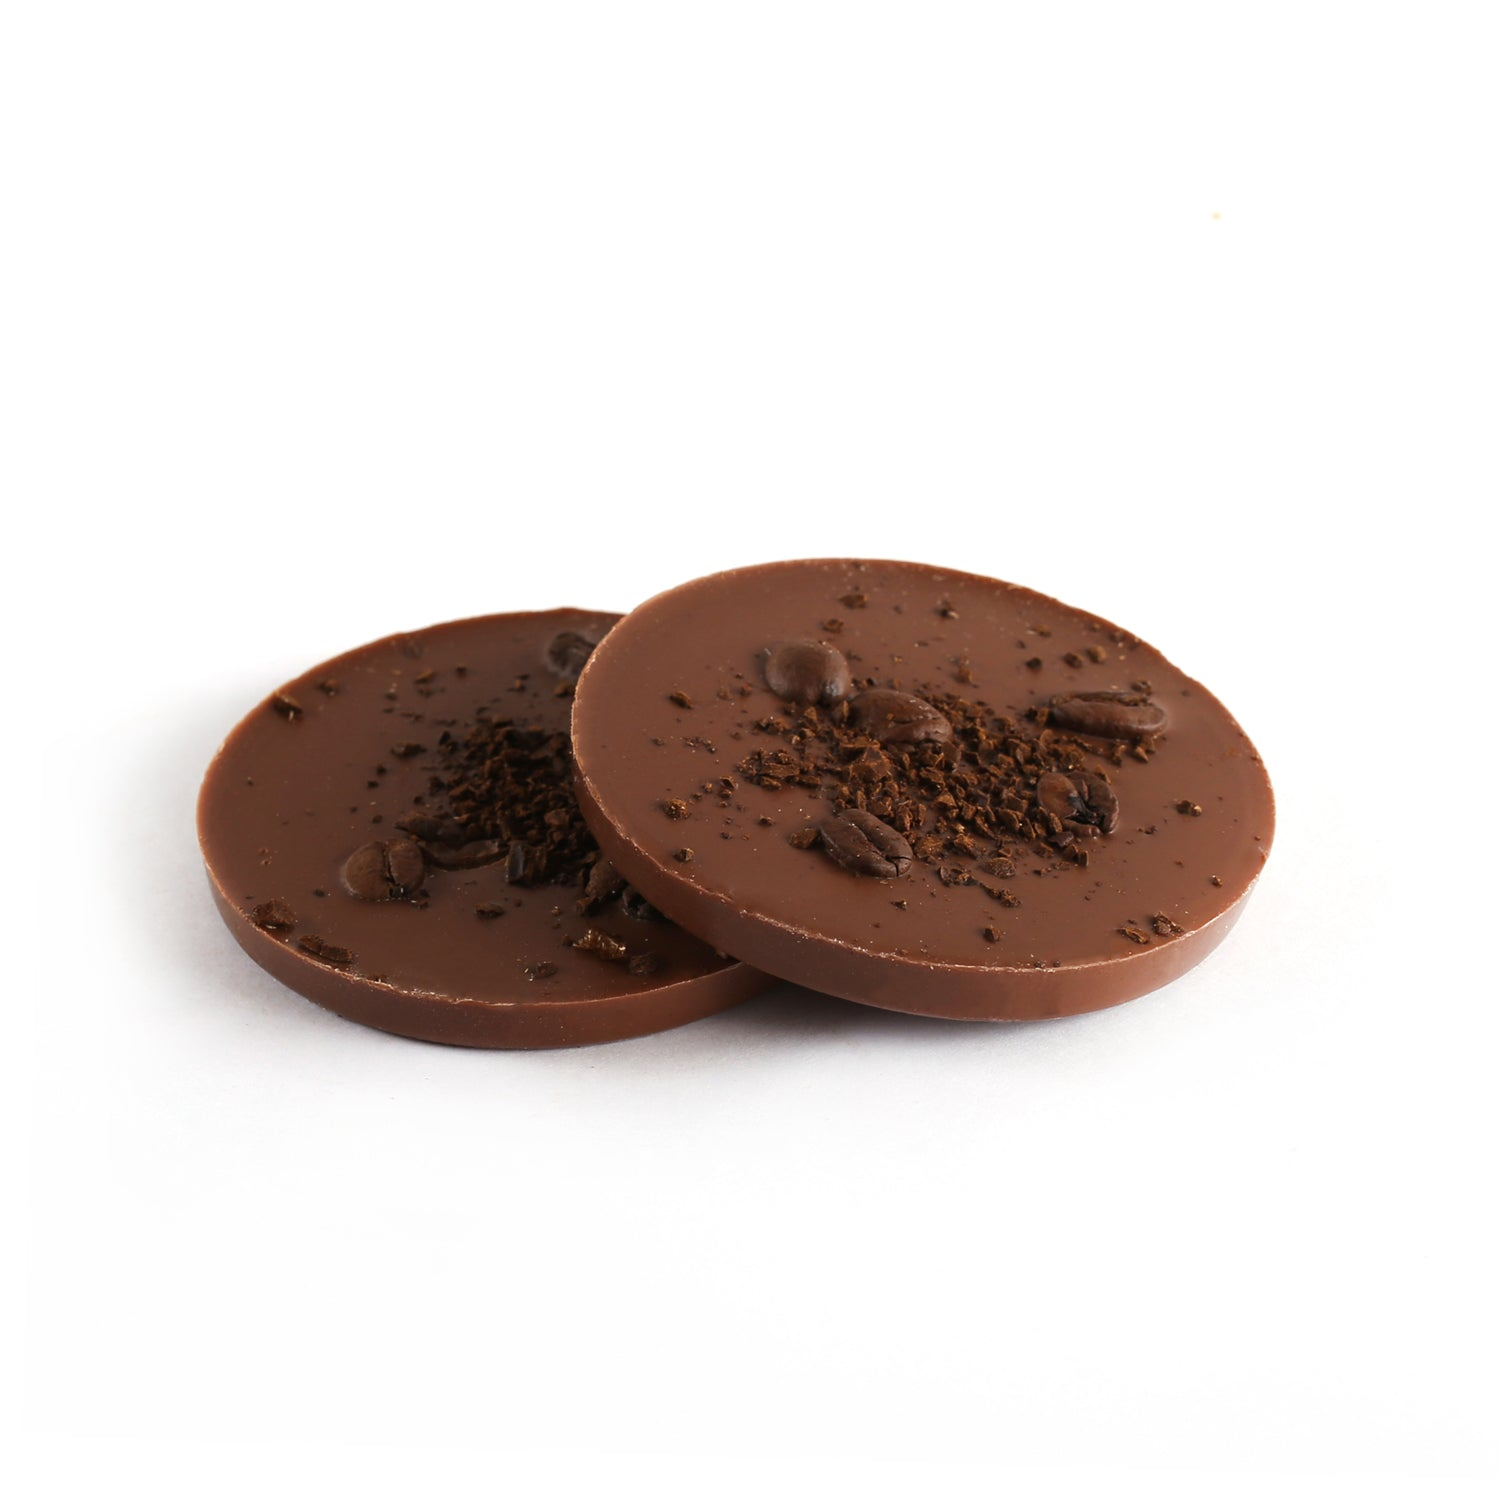 Product photo of dark chocolate mocha delight. Round patty topped with whole coffee beans